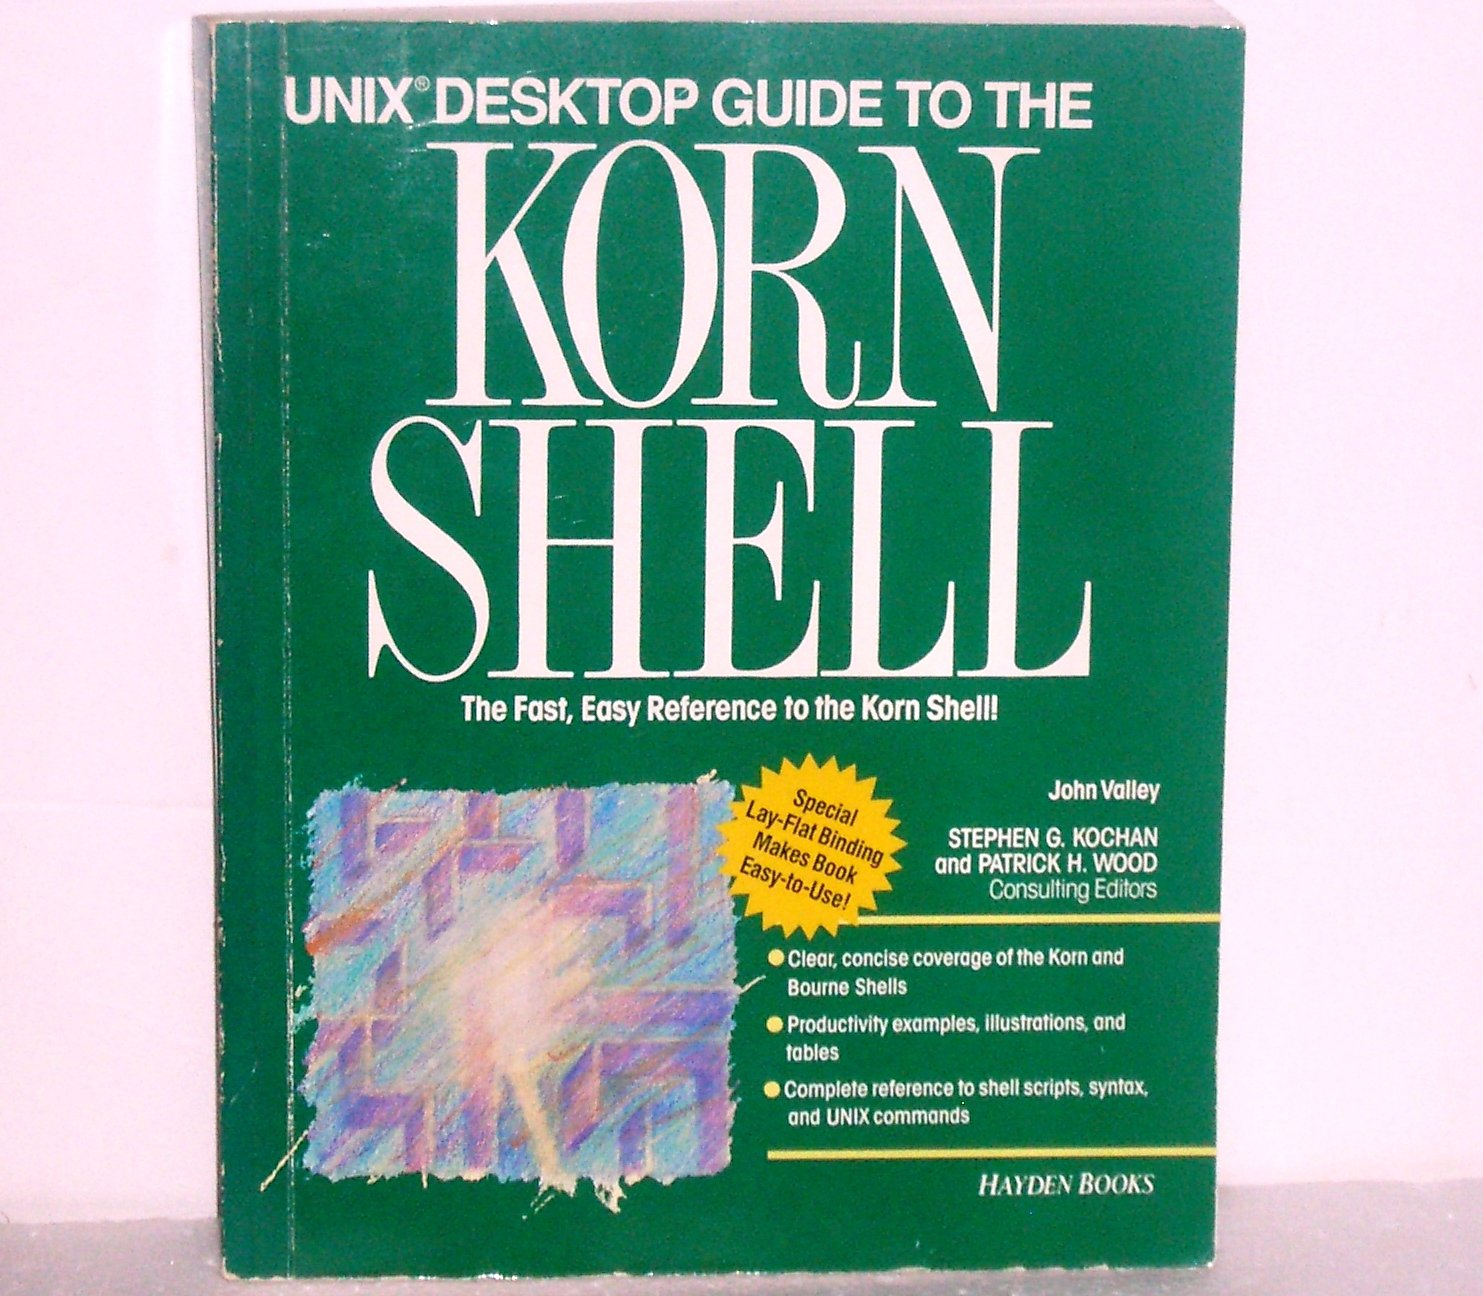 UNIX Desktop Guide to the Korn Shell by John Valley 1991